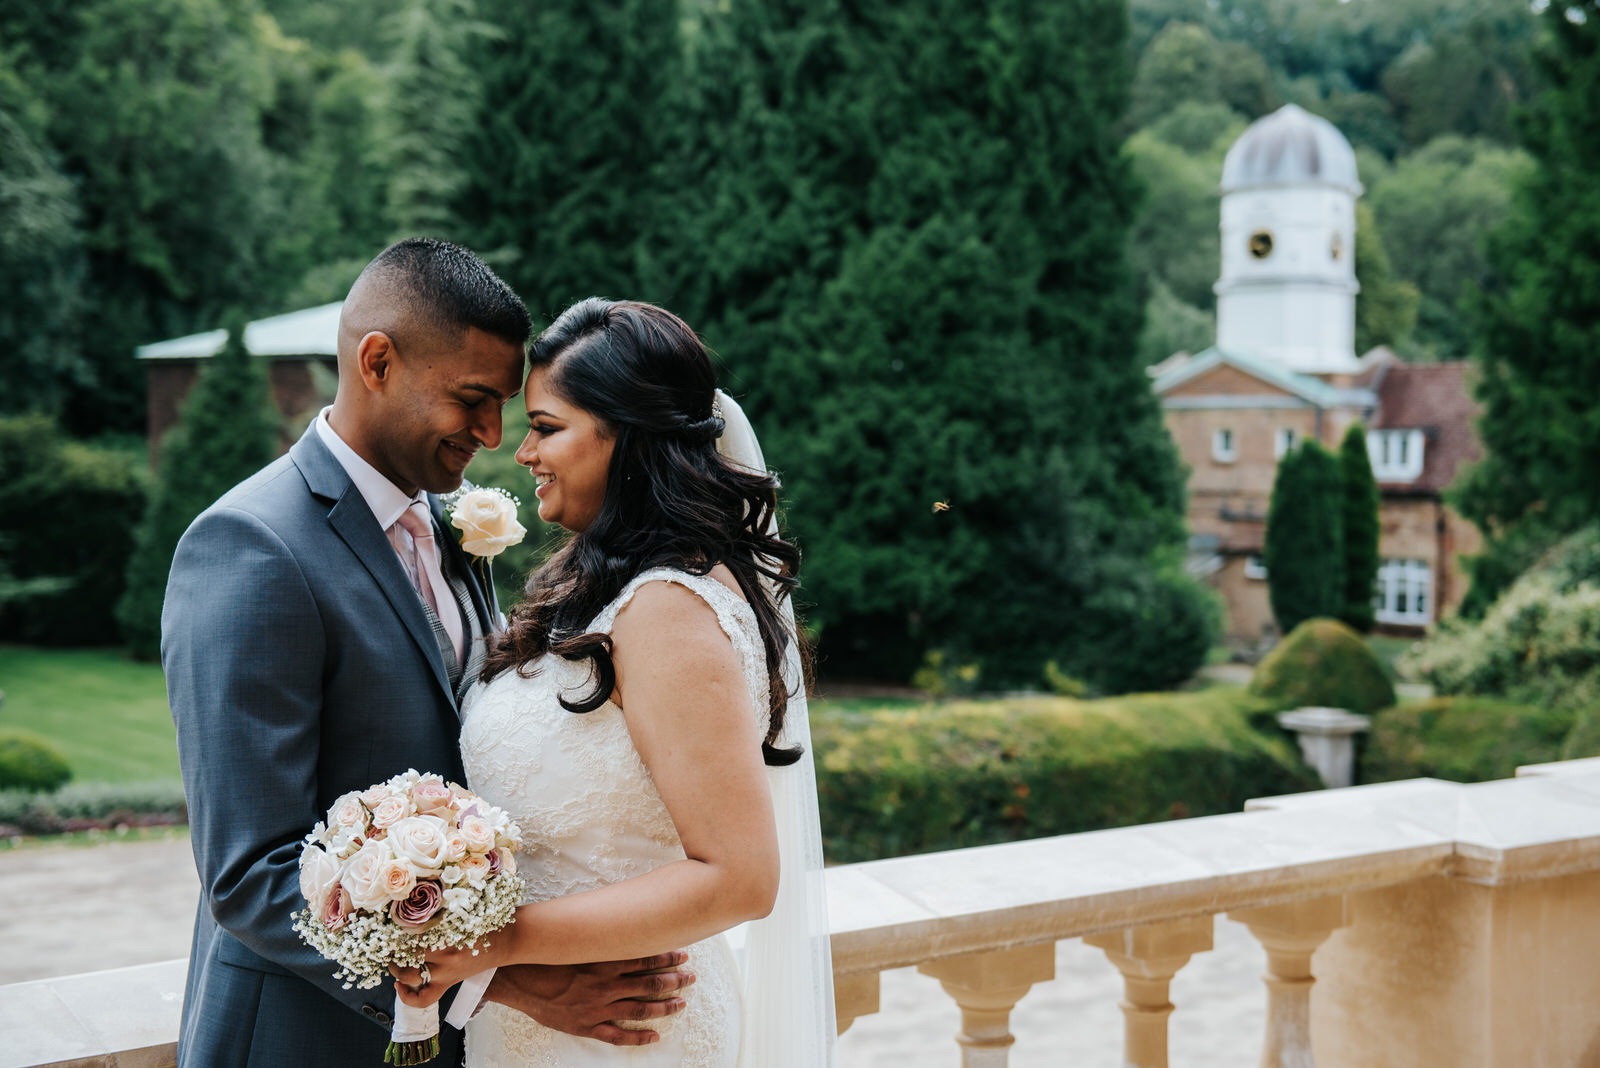 Bride and groom touch foreheads and smile during couple photos